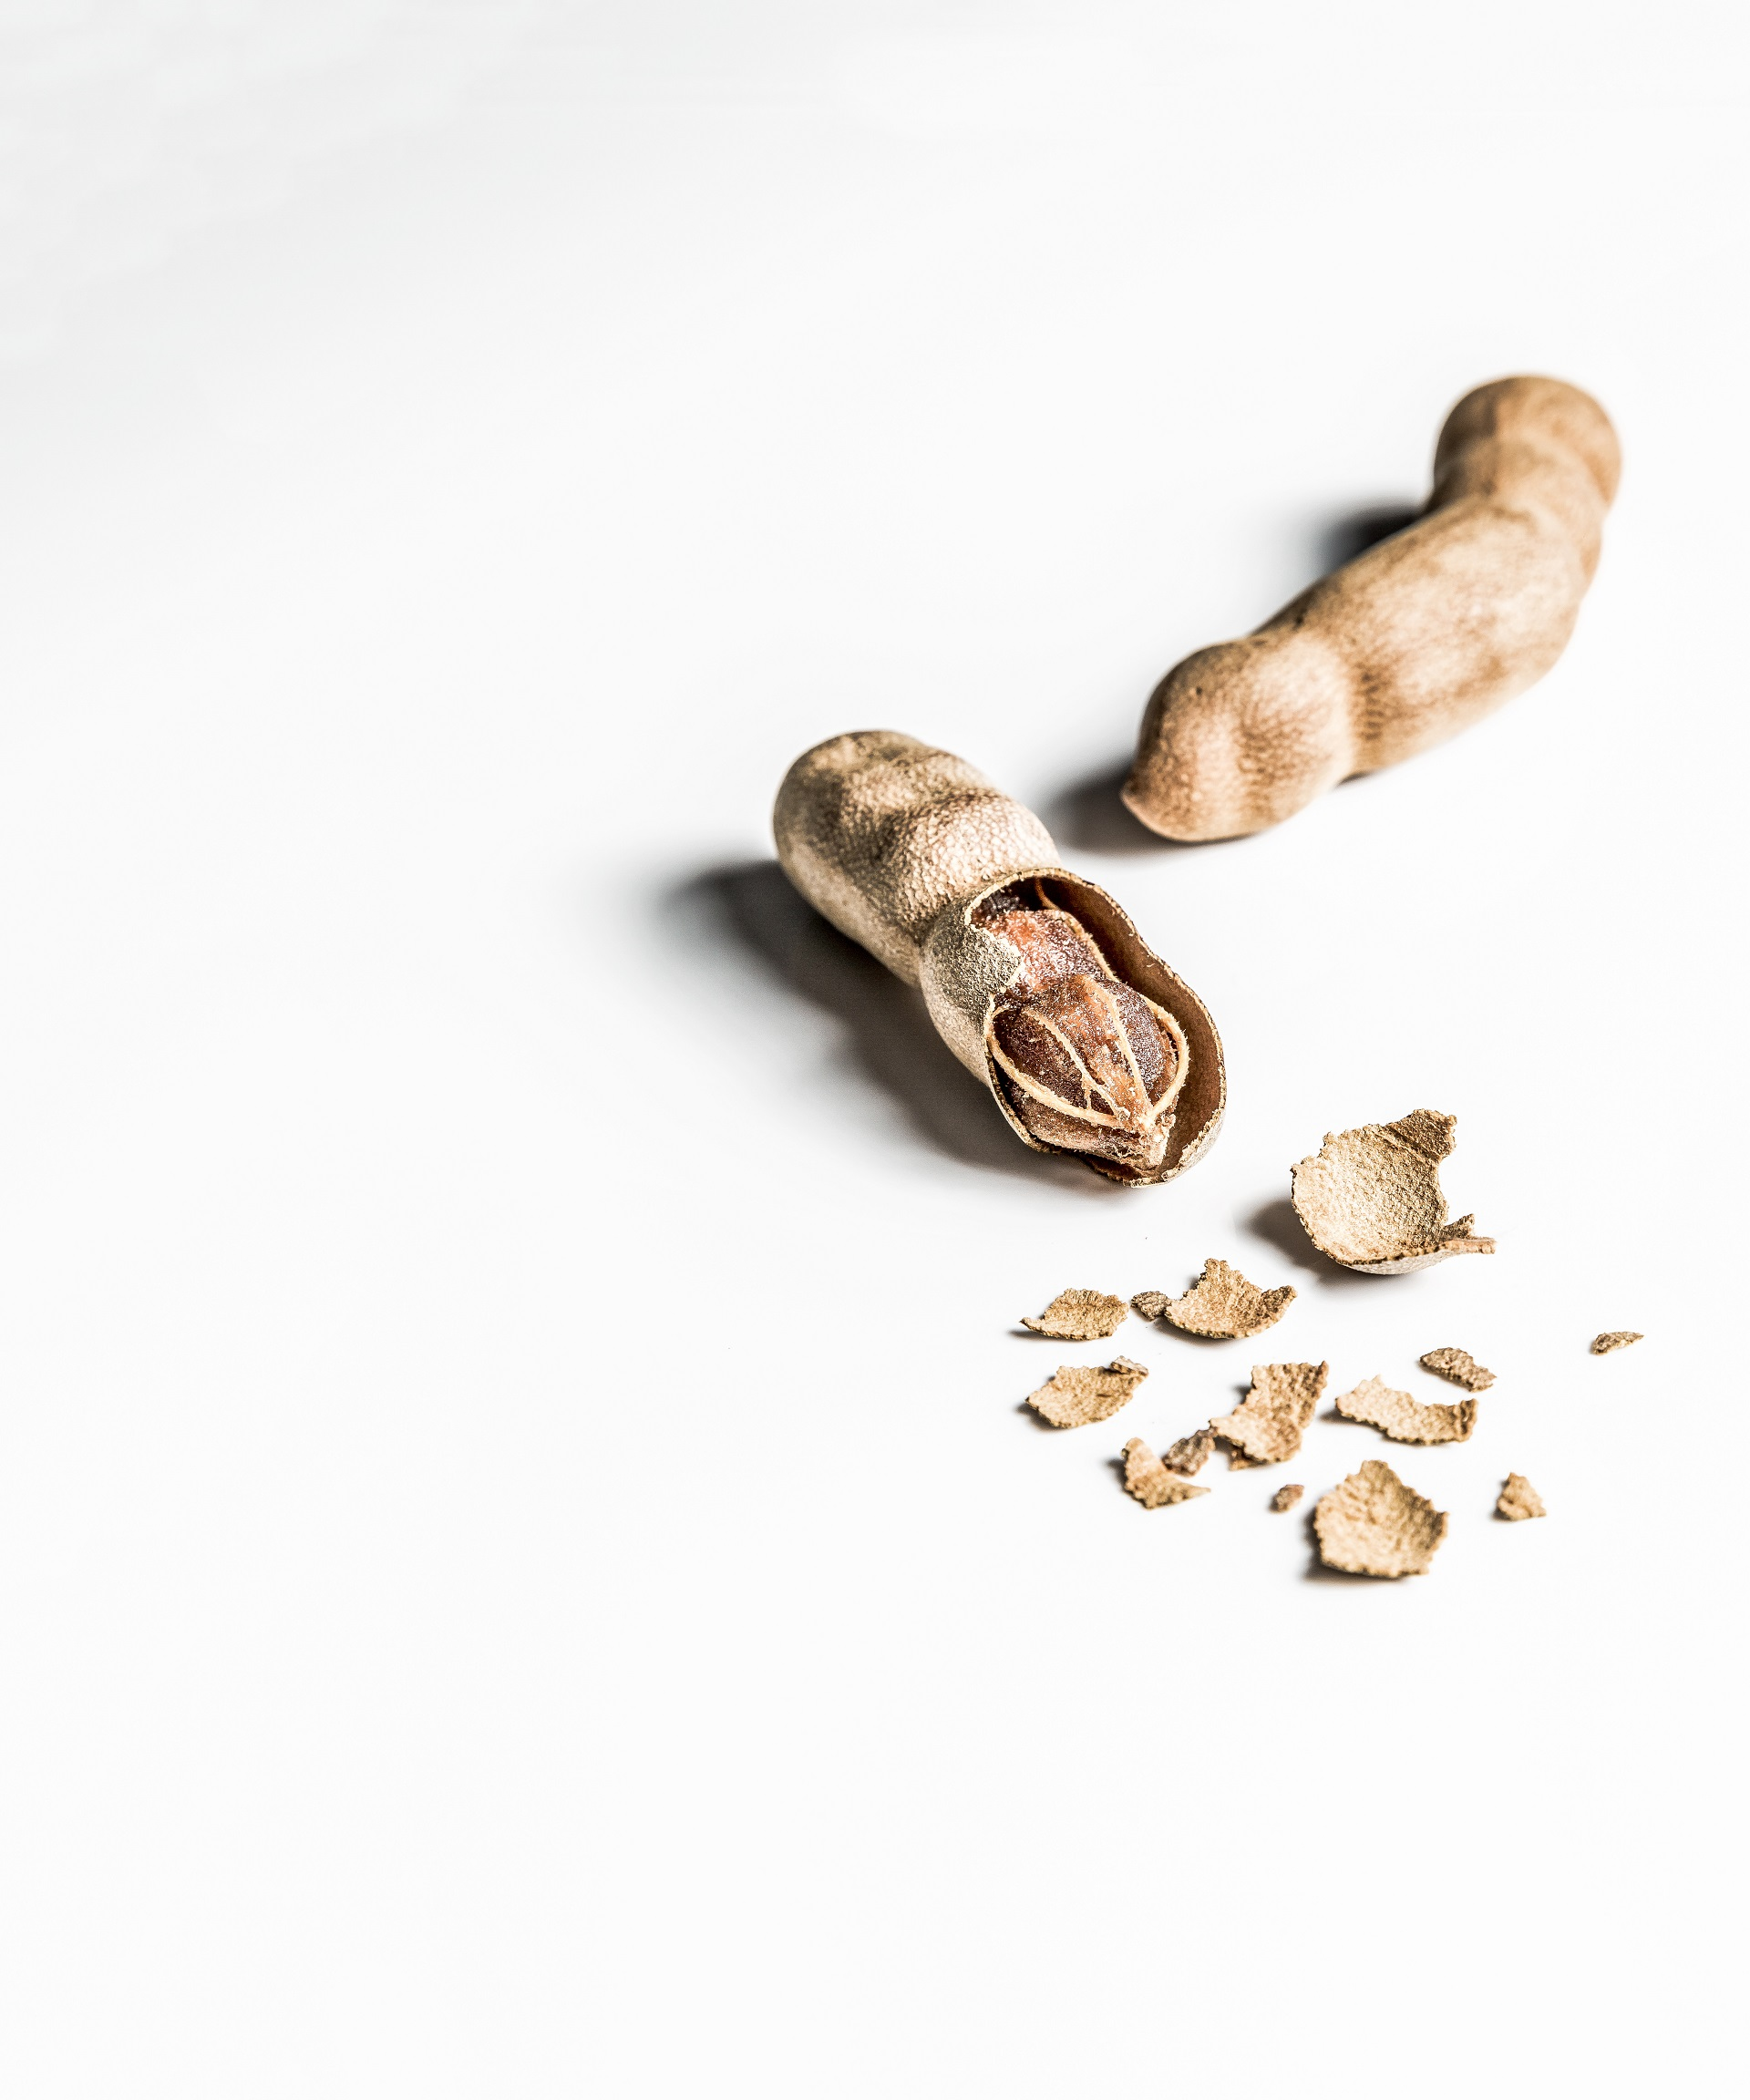 What is a tamarind?